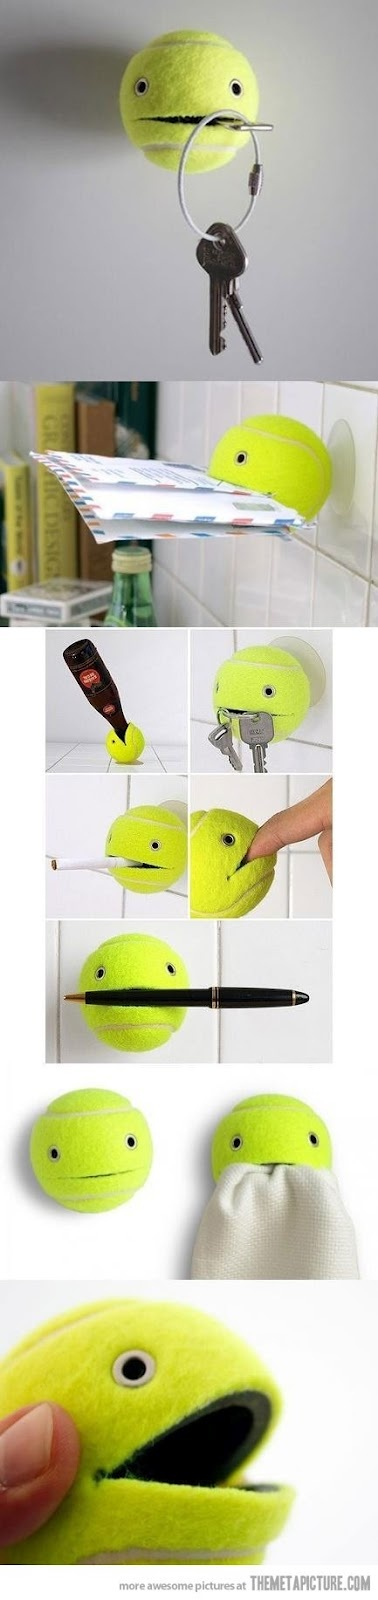 """Useless crafting idea #7892: """"Useful"""" tennis ball. Can you hold my keys? This towel? Hold my beer, but don't drink it. Heh heh, pull my finger."""